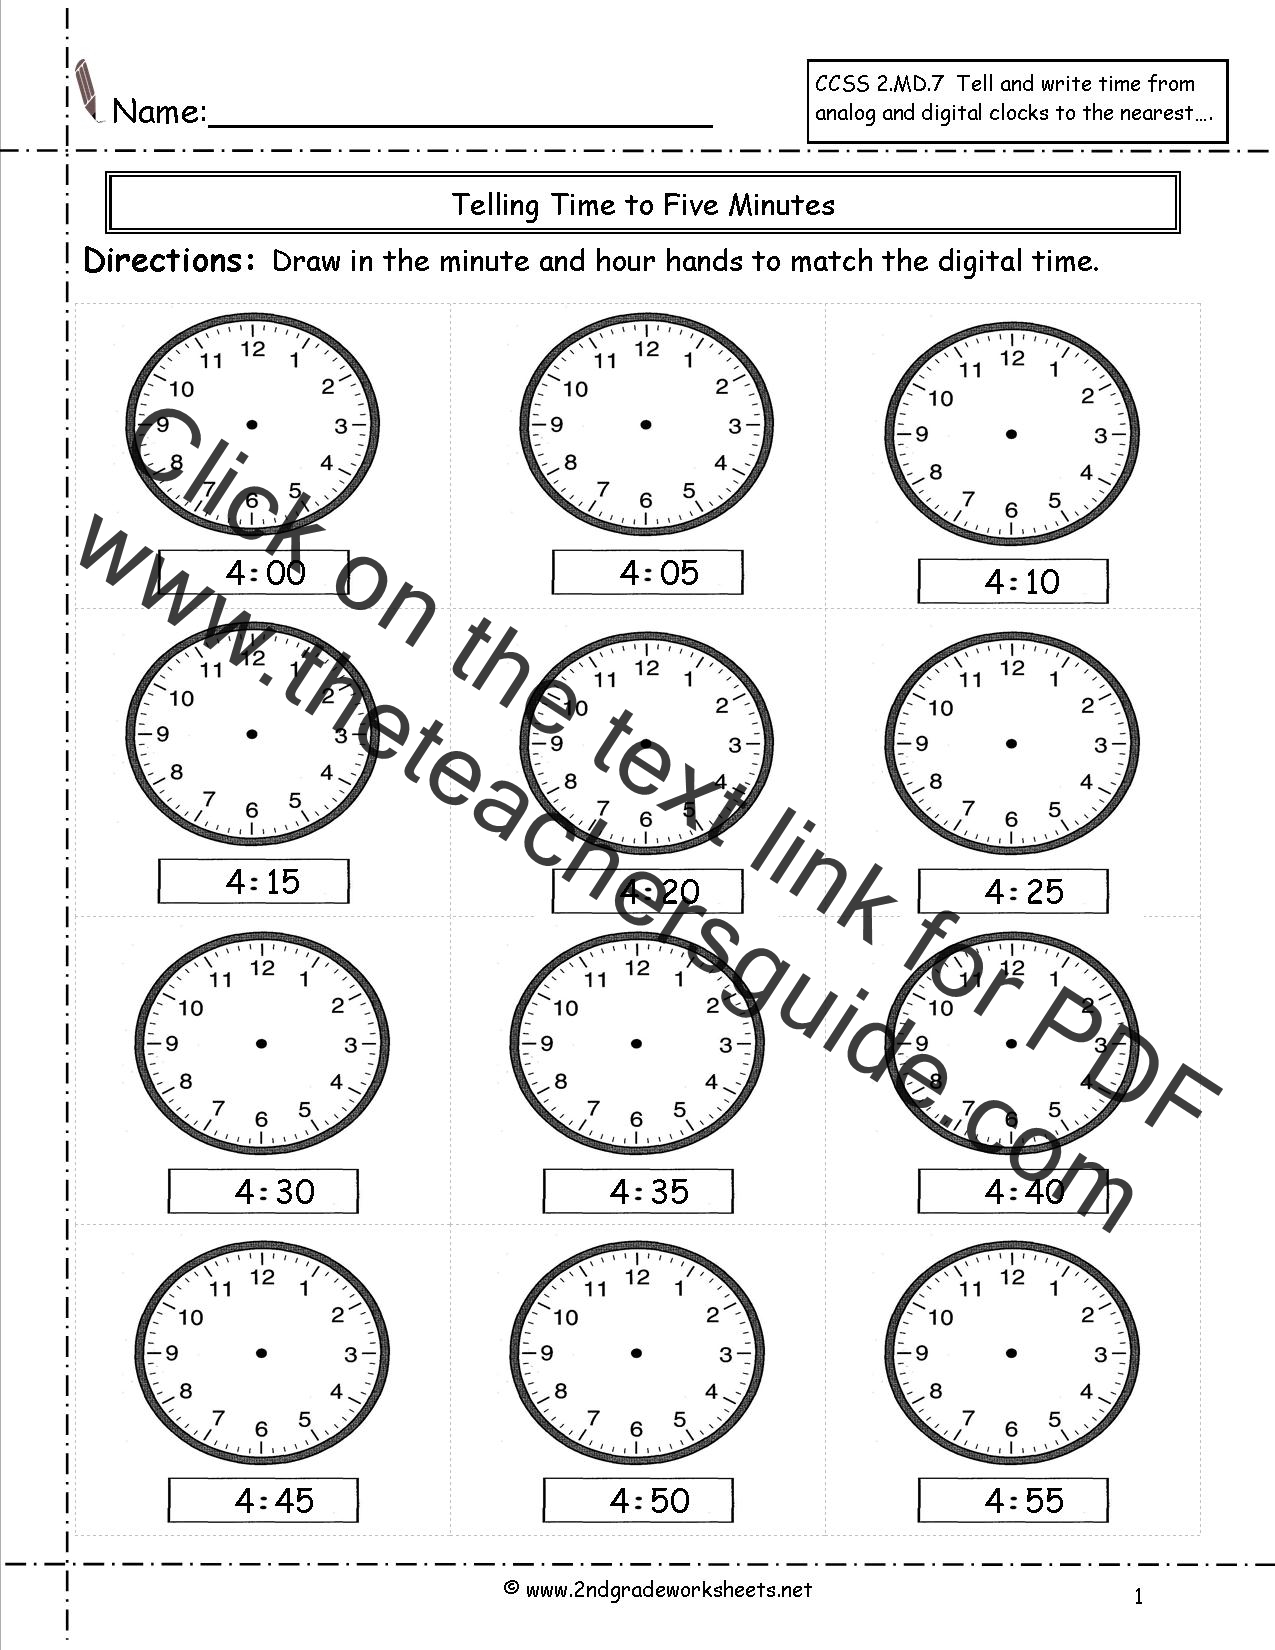 Worksheet Teaching Time To Second Graders telling and writing time worksheets worksheets